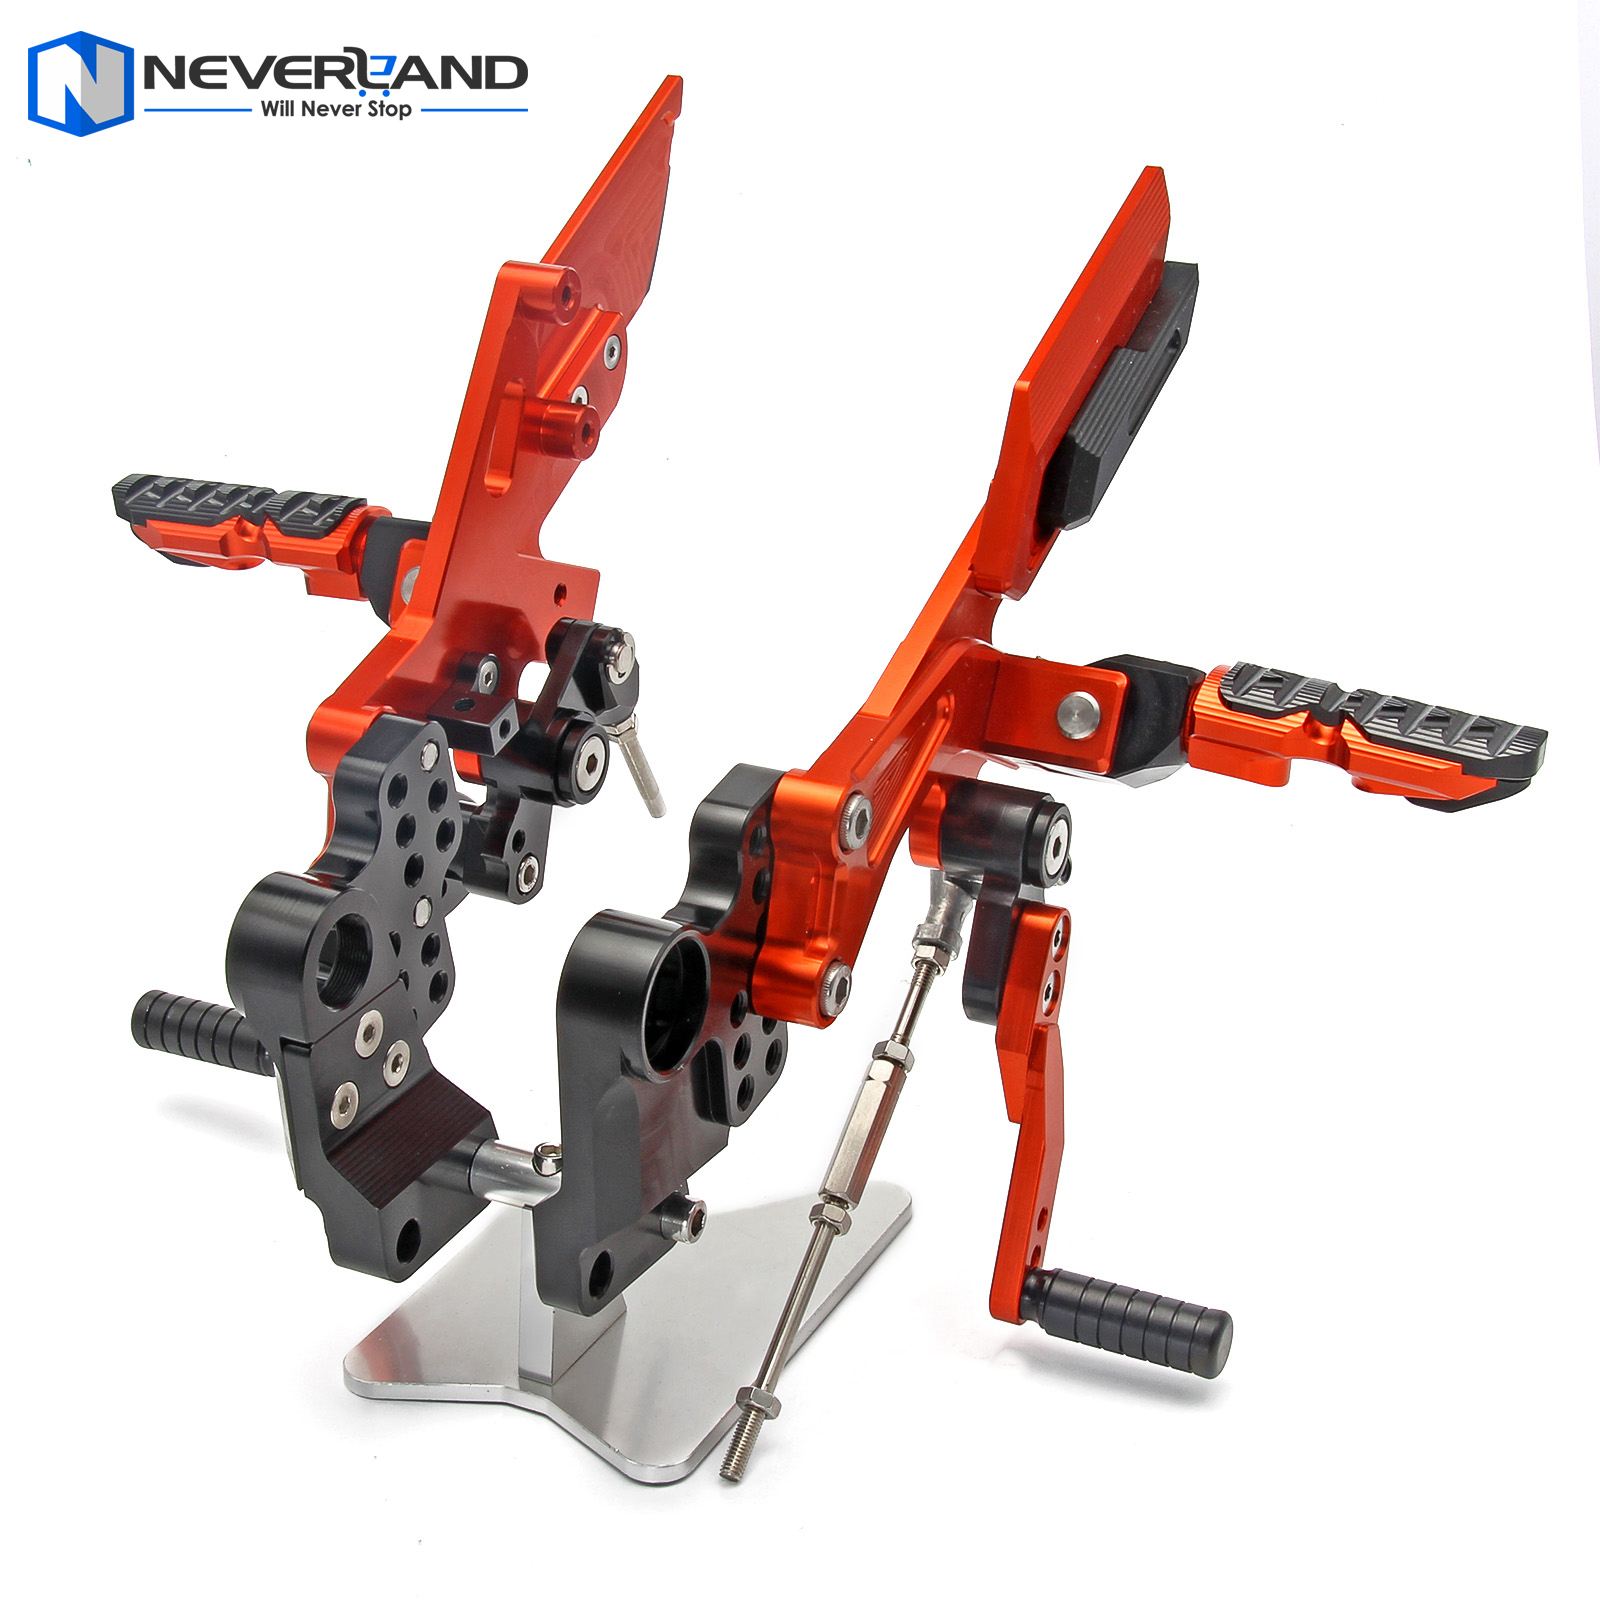 NEVERLAND CNC Adjustable Rider Rear Sets Rearset Footrest Foot Rest Pegs For KTM DUKE 125/200 2011-2014 2012 2013 Orange motorcycle rear brake master cylinder reservoir cove for ktm duke 125 200 390 rc200 rc390 2012 2013 2014